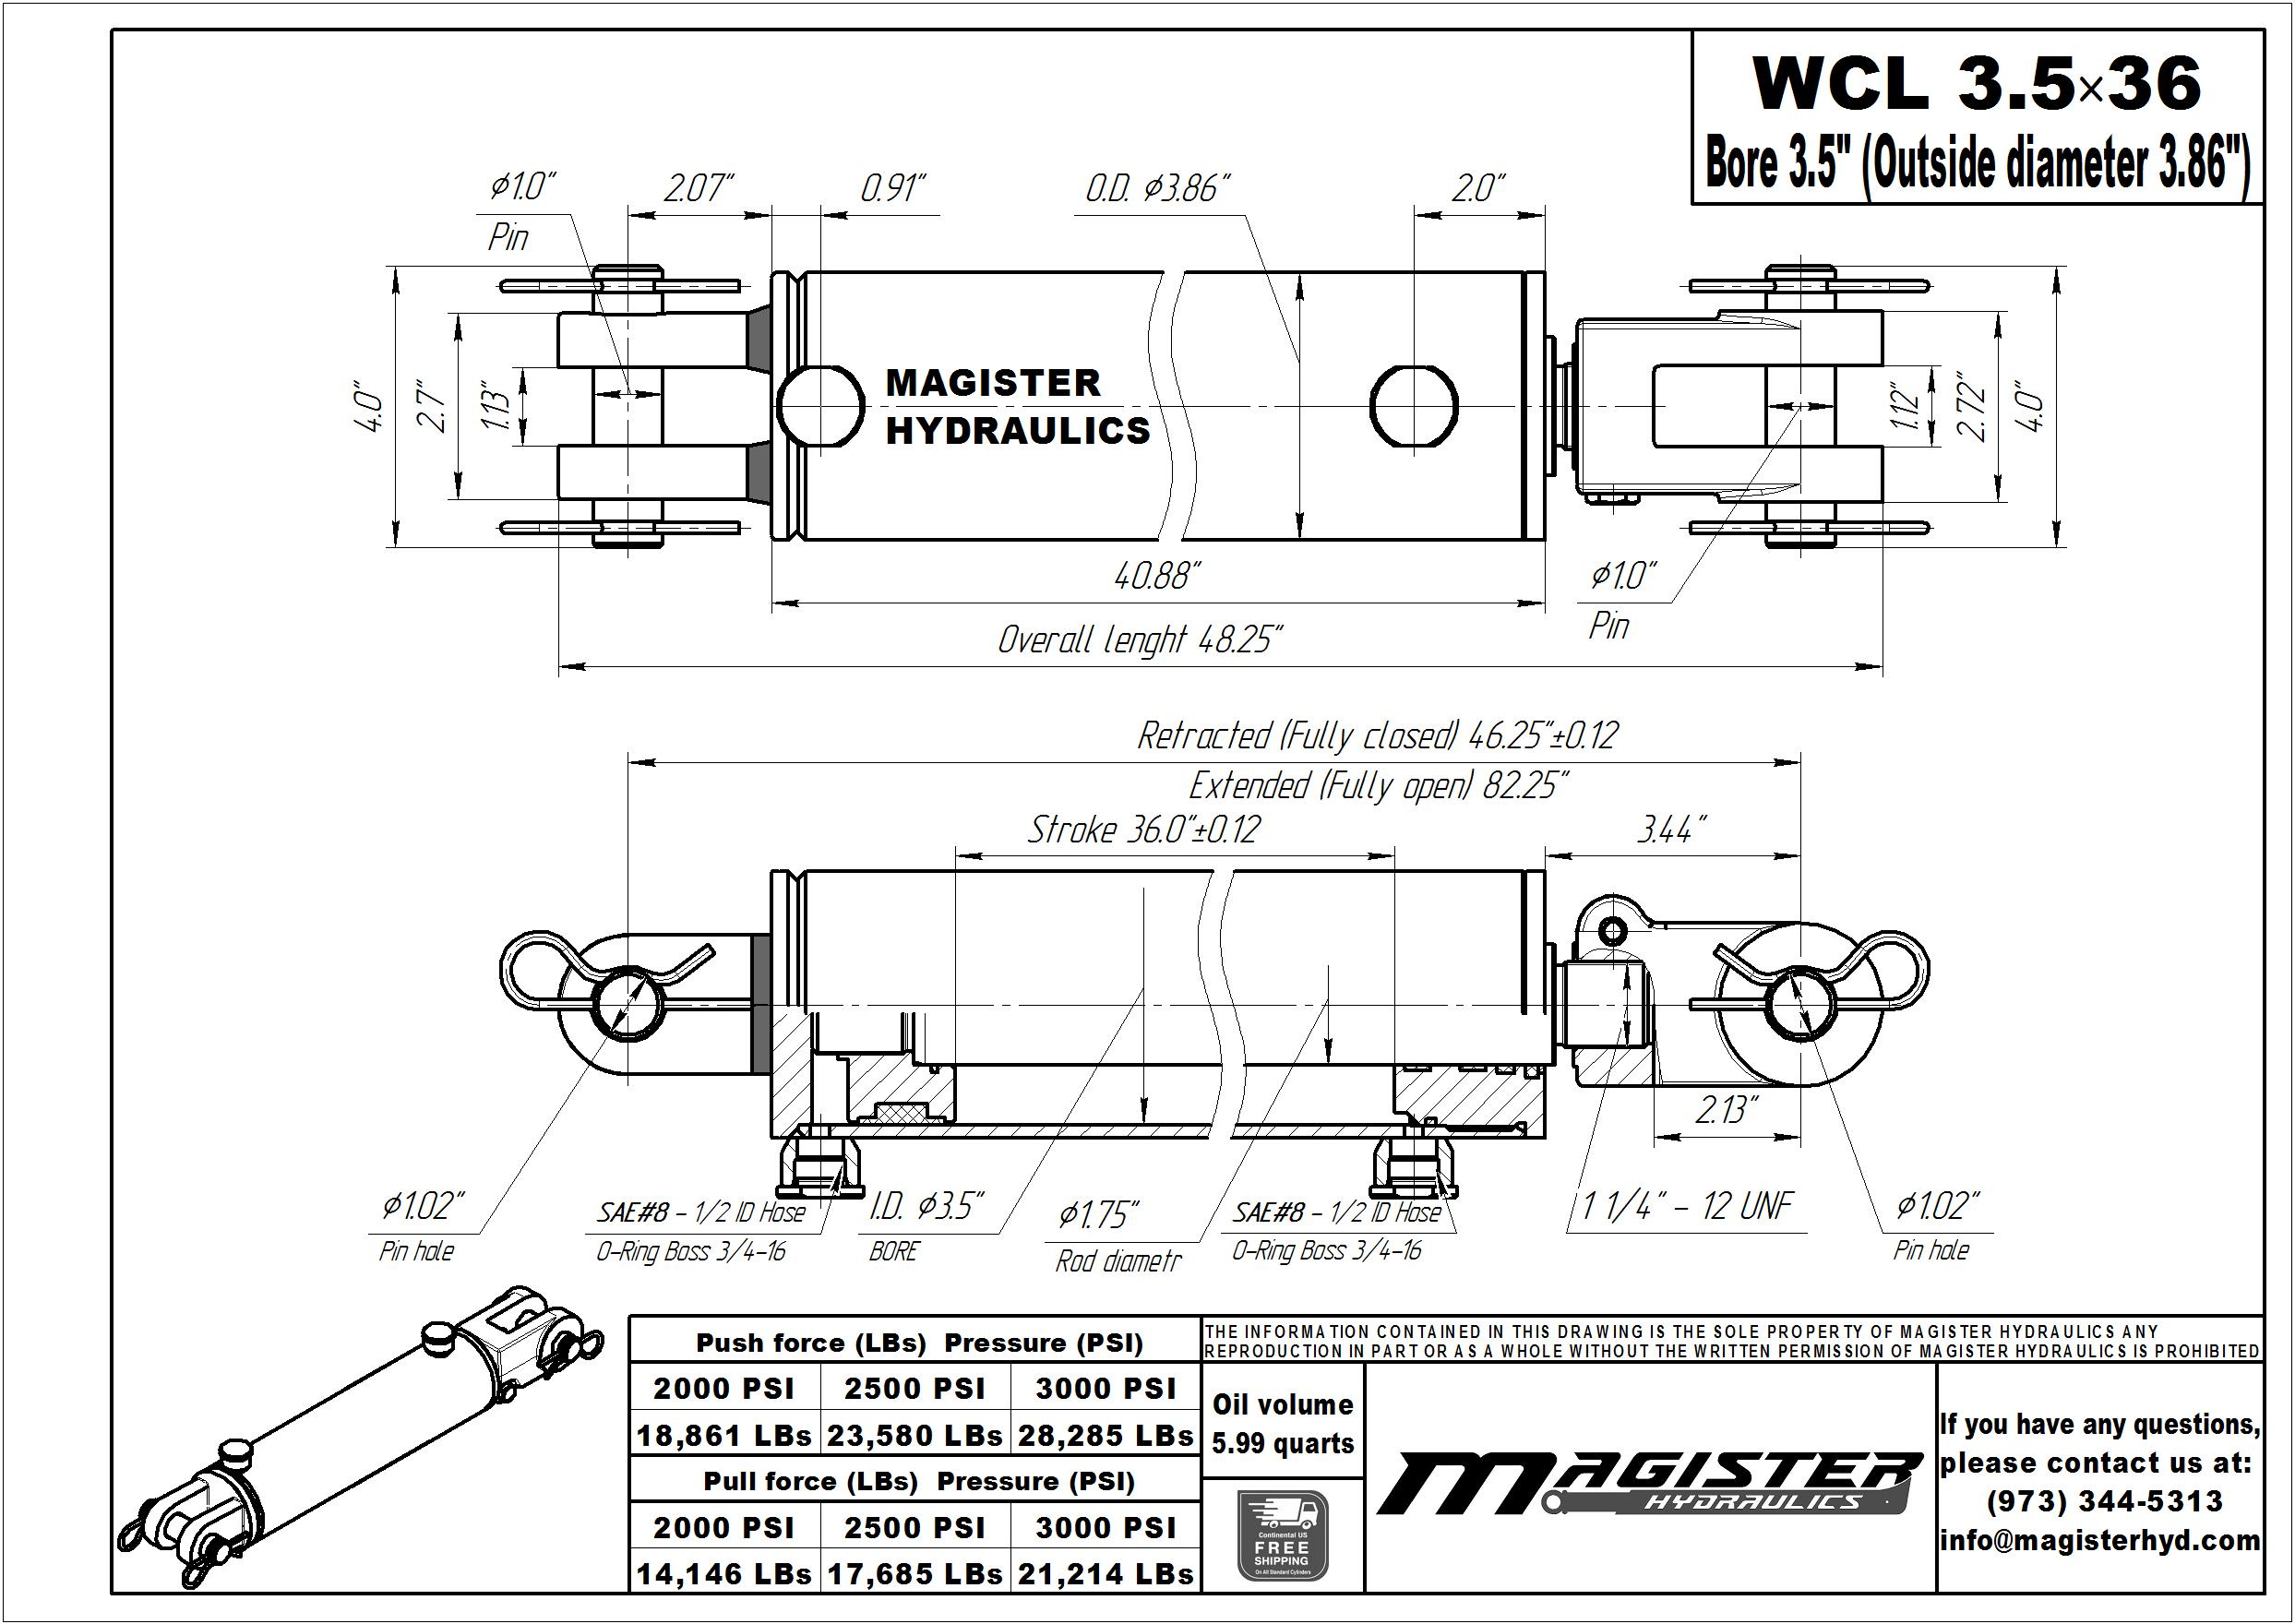 3.5 bore x 36 stroke hydraulic cylinder, welded clevis double acting cylinder | Magister Hydraulics